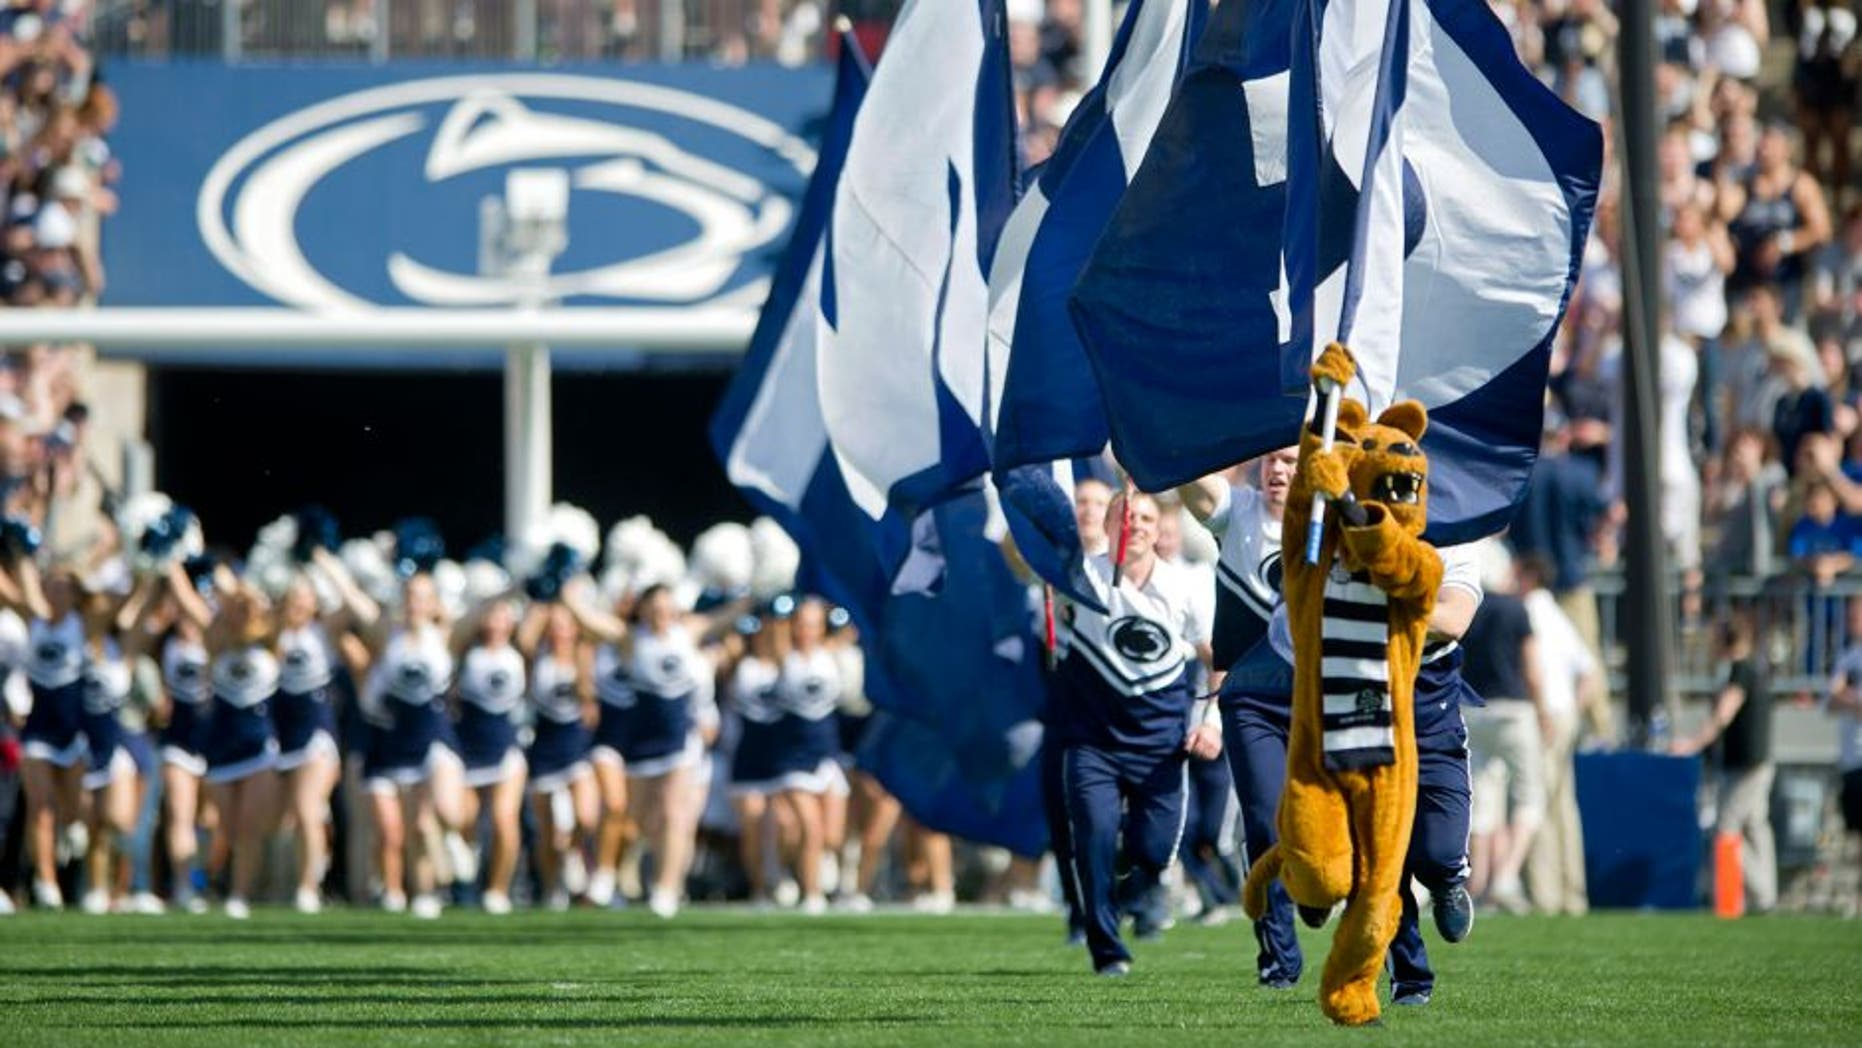 The Penn State Nittany Lion leads the cheerleaders and the football team onto the field for the Blue White game on Saturday, April 18, 2015, at Beaver Stadium in University Park, Pa. (Abby Drey/Centre Daily Times/TNS via Getty Images)